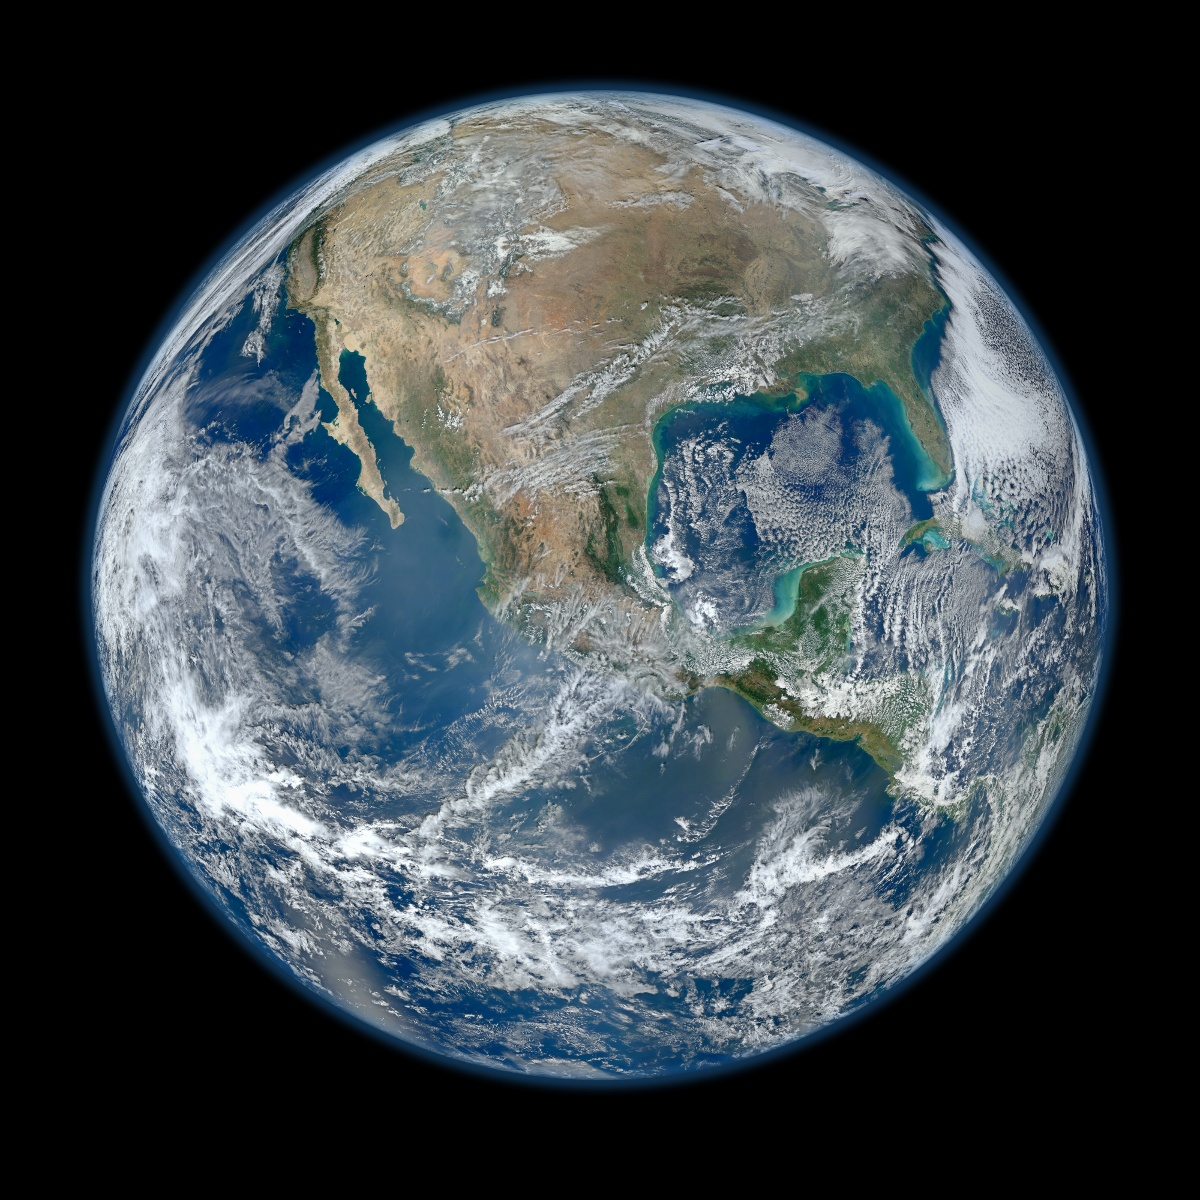 uomi NPP's VIIRS instrument returned this hi-resolution full-disc image of the Earth from several passes made Jan. 4, 2012.